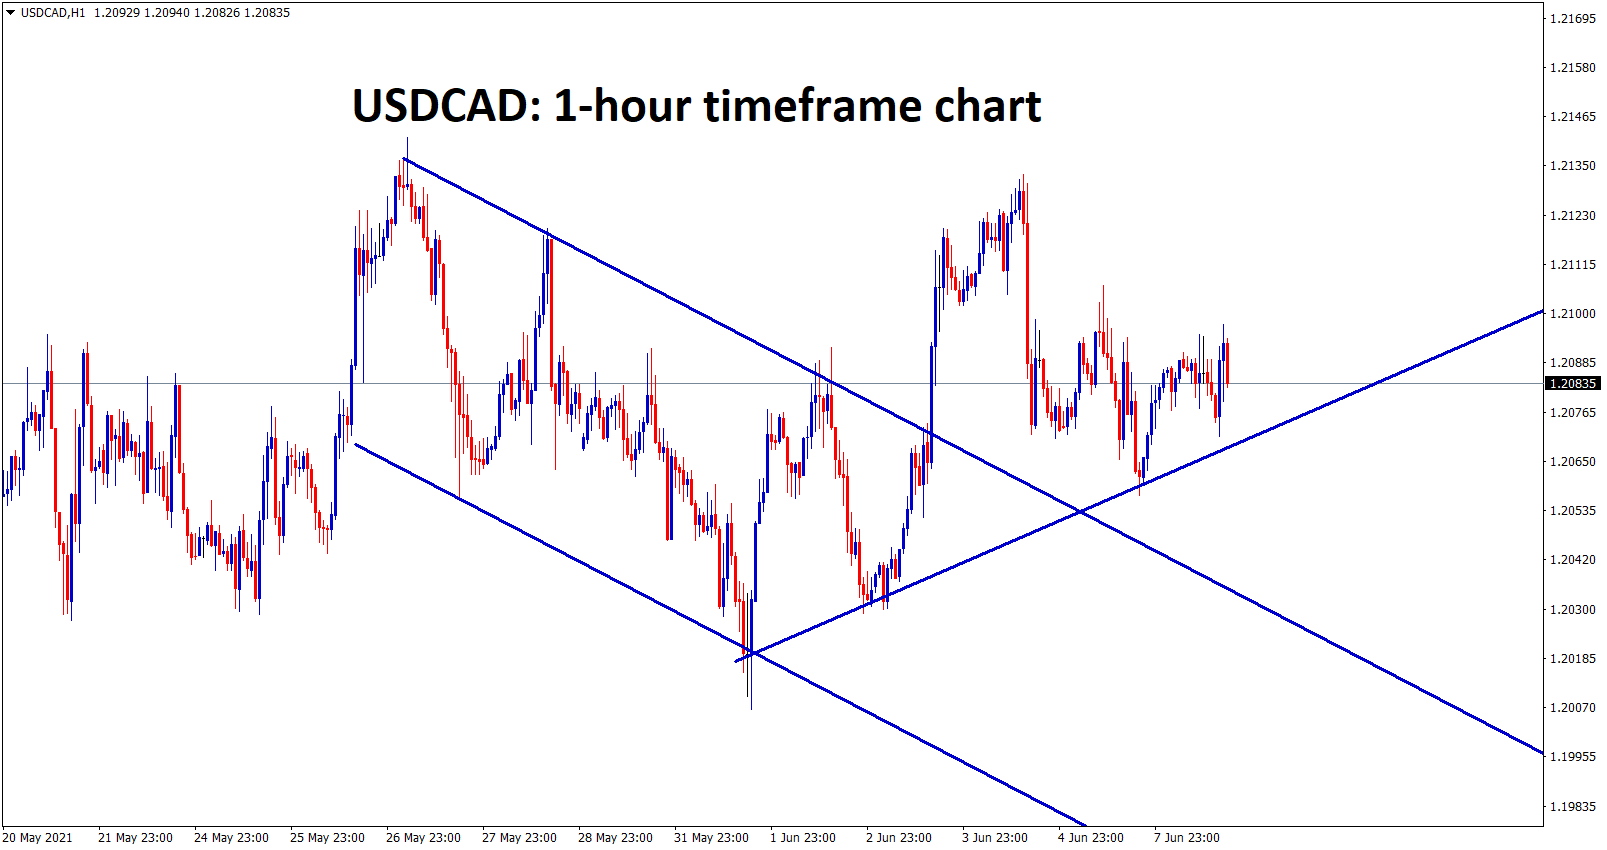 USDCAD broken the downtrend line and market moving now in an Uptrend